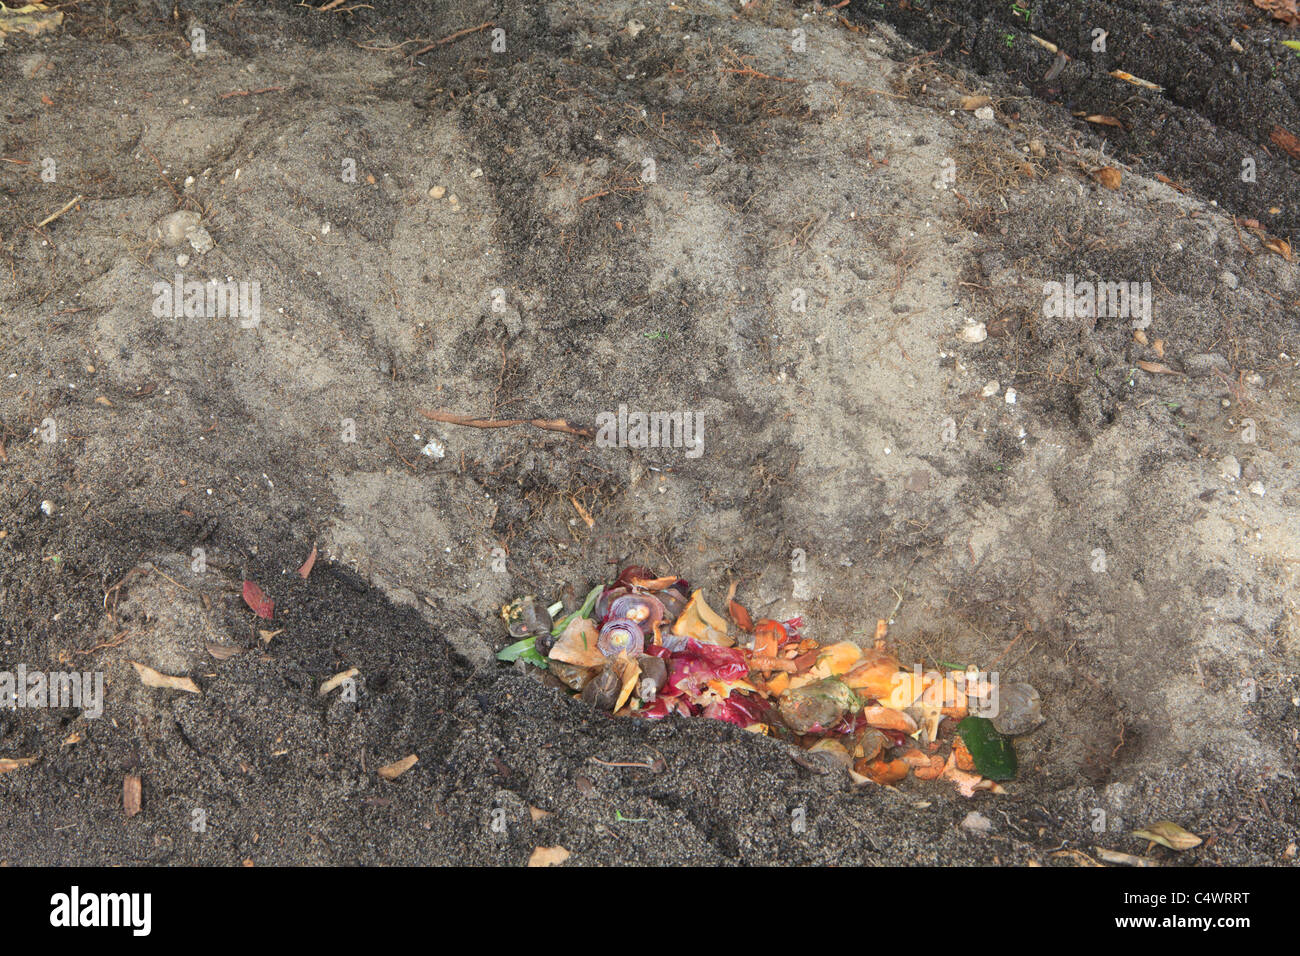 Kitchen scraps in the trench. Part 4 of Trench Composting to improve soil quality series of images. - Stock Image